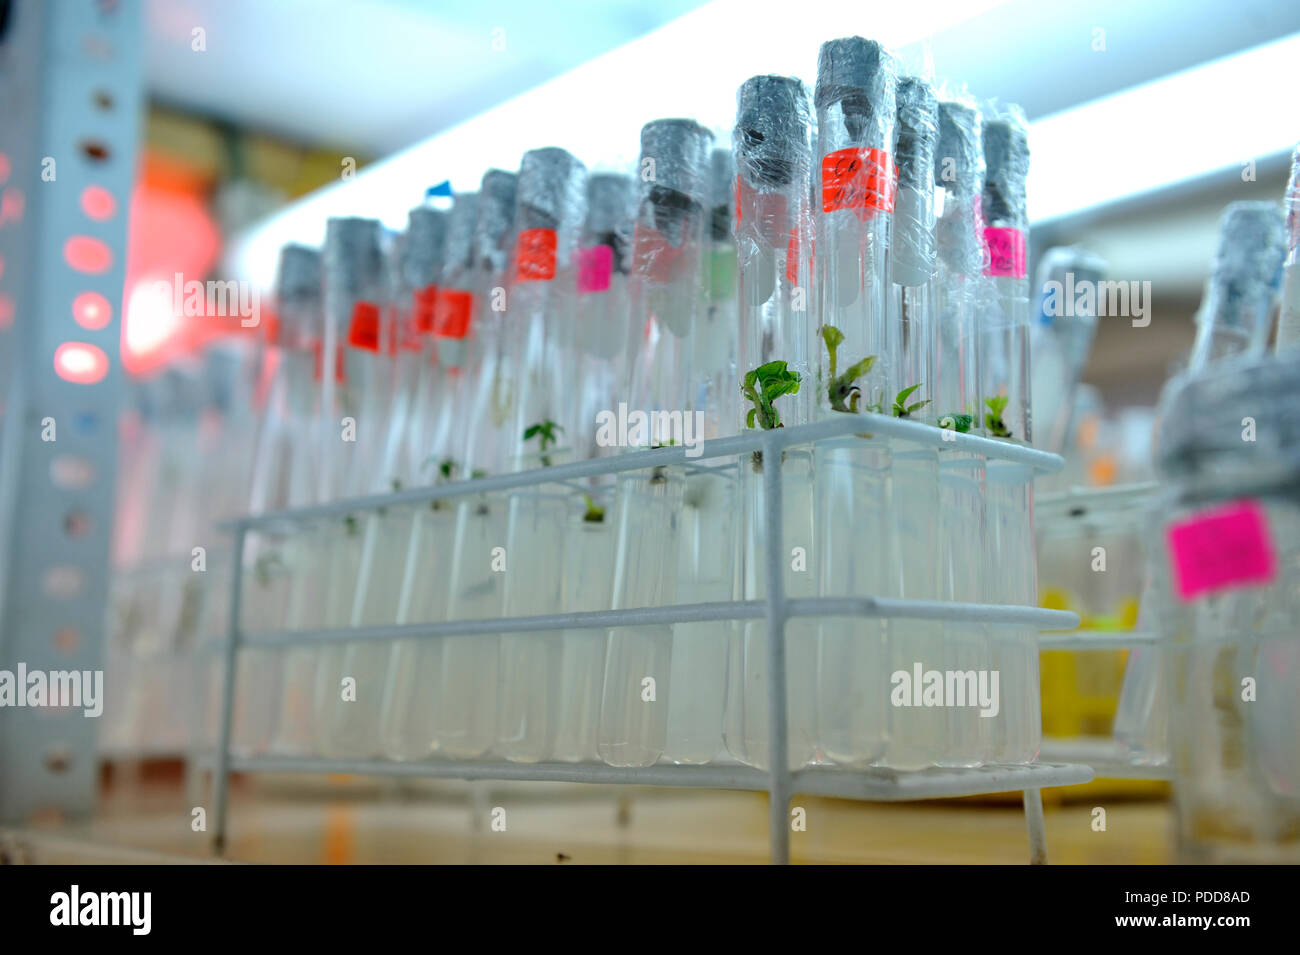 Close up row of glass bottle plant tissue culture on shelf in laboratory. Stock Photo